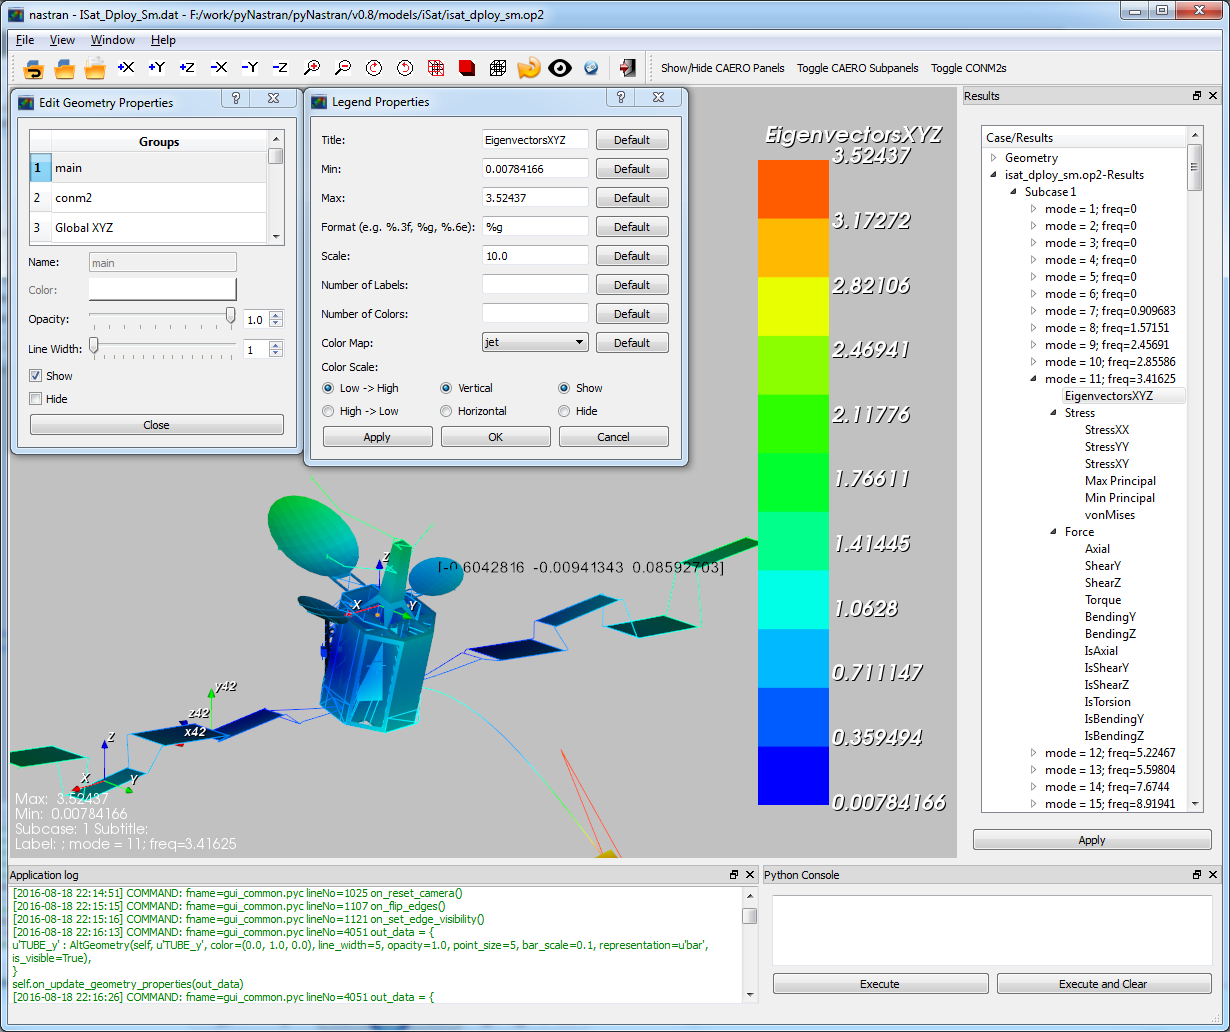 Graphical User Interface (GUI) — pyNastran 1 3-dev 1 3-dev